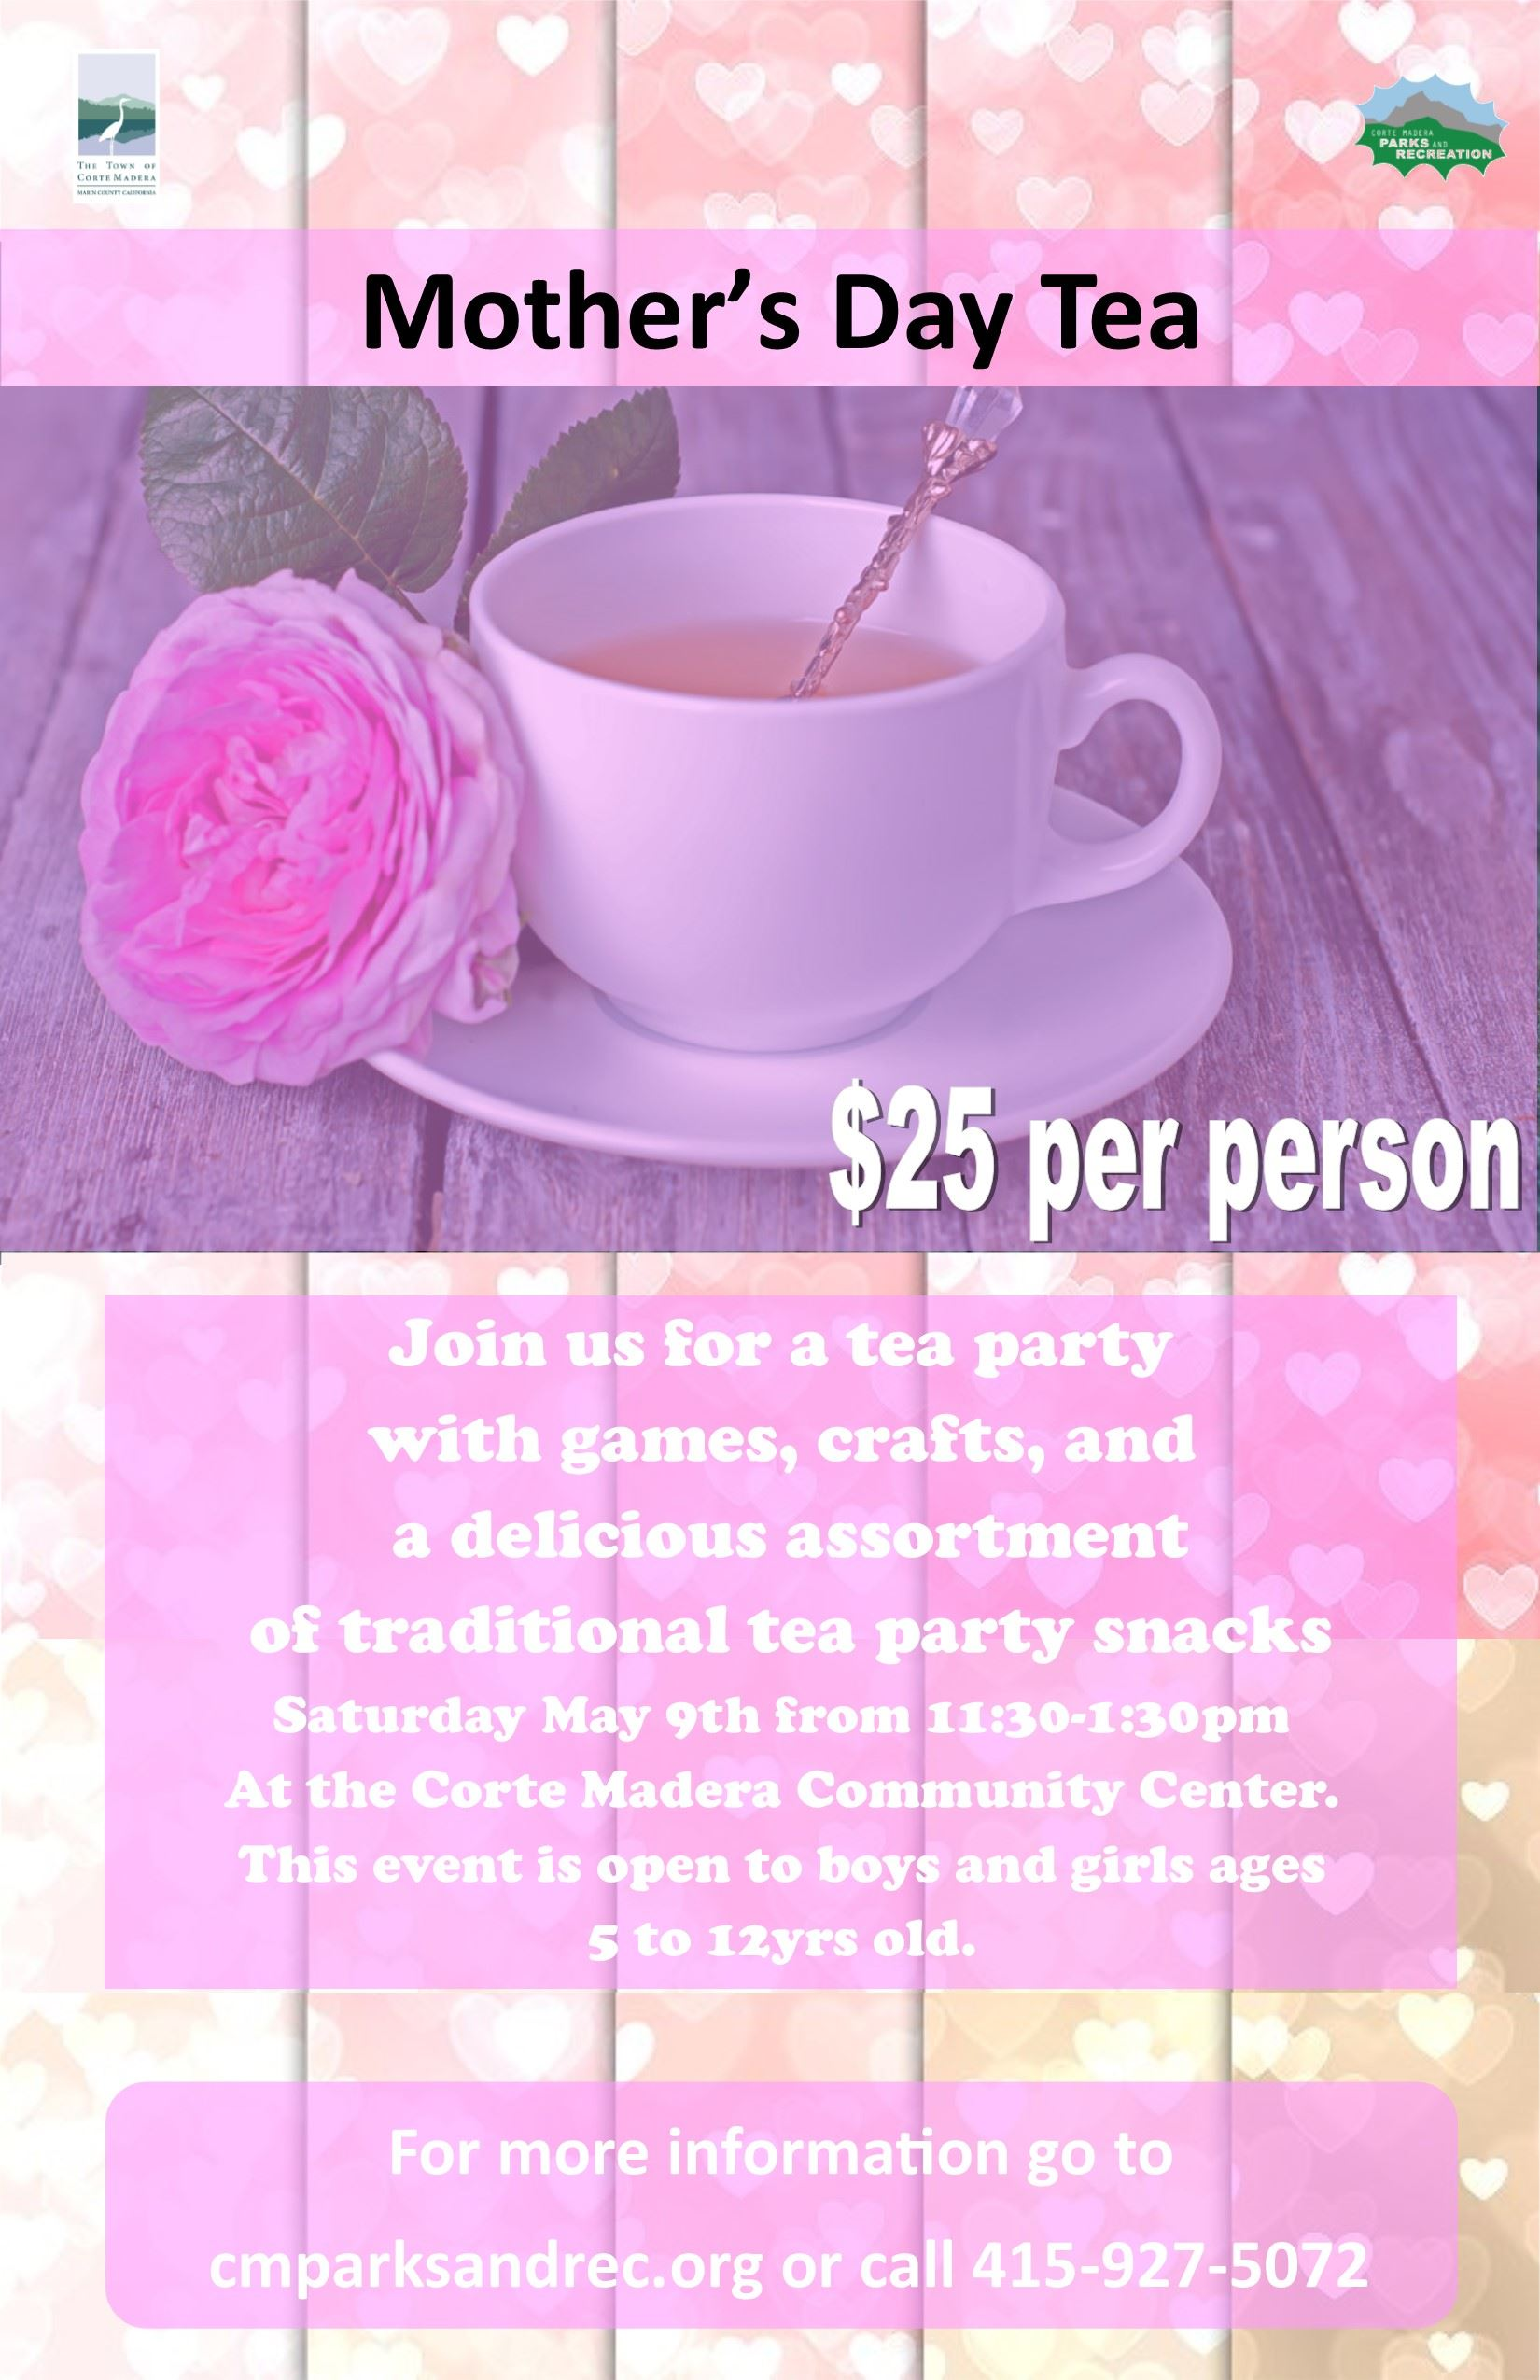 Enchanted Mothers Day Tea 2019